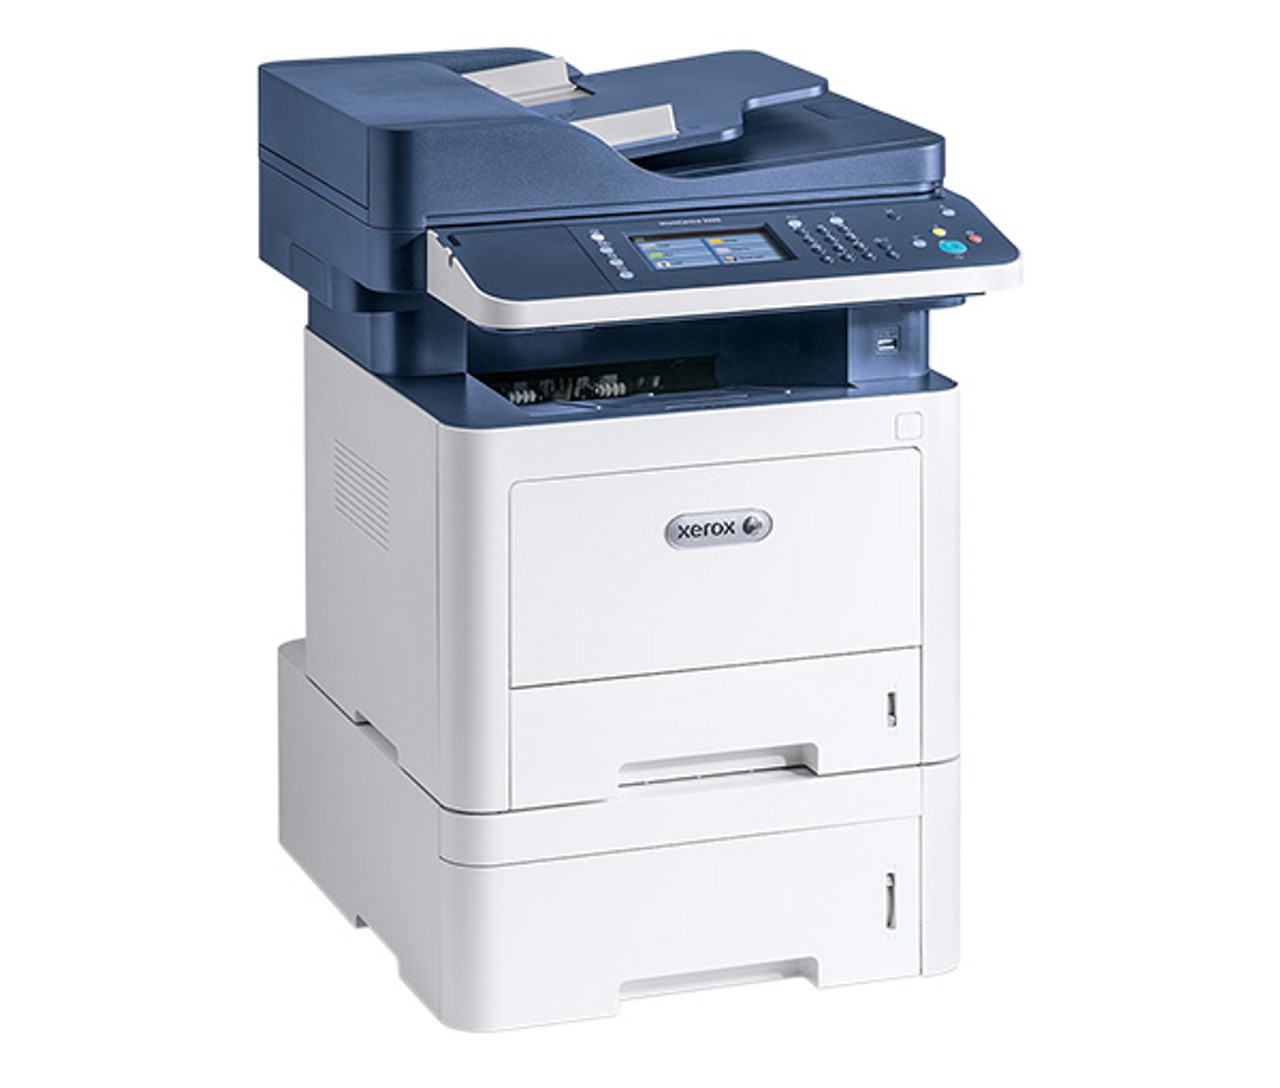 Xerox WorkCentre 3335  with optional paper tray for dual tray printing